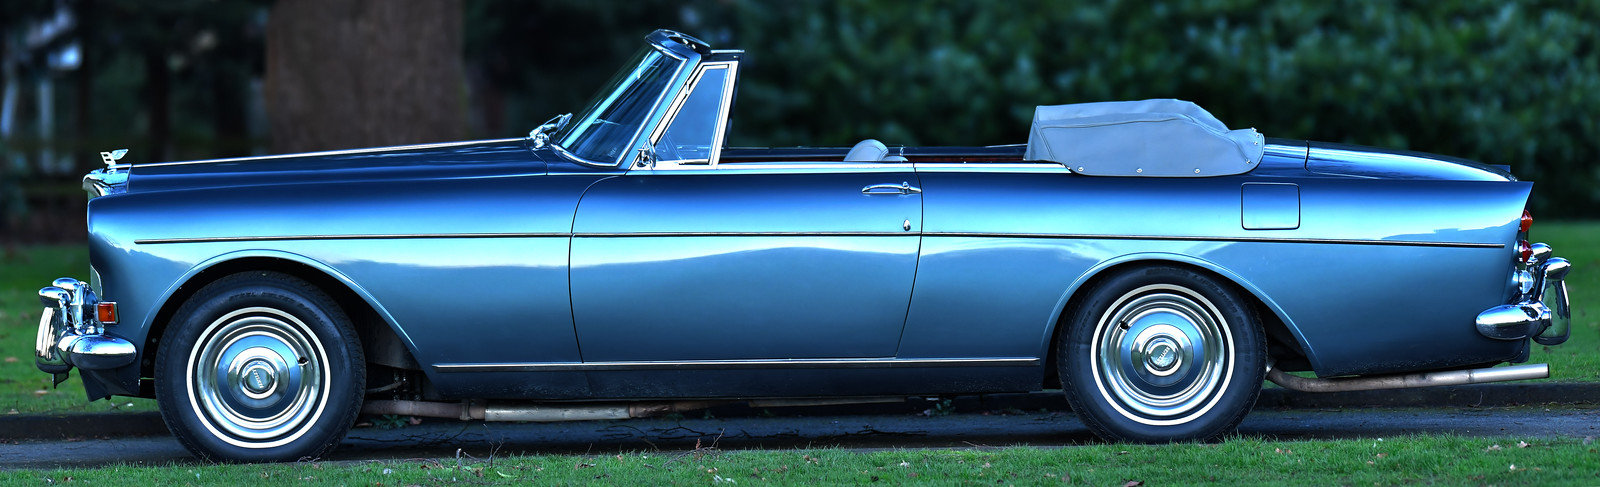 1961 Bentley S2 Continental Drophead Coupé DHC by Park Ward  For Sale (picture 2 of 6)